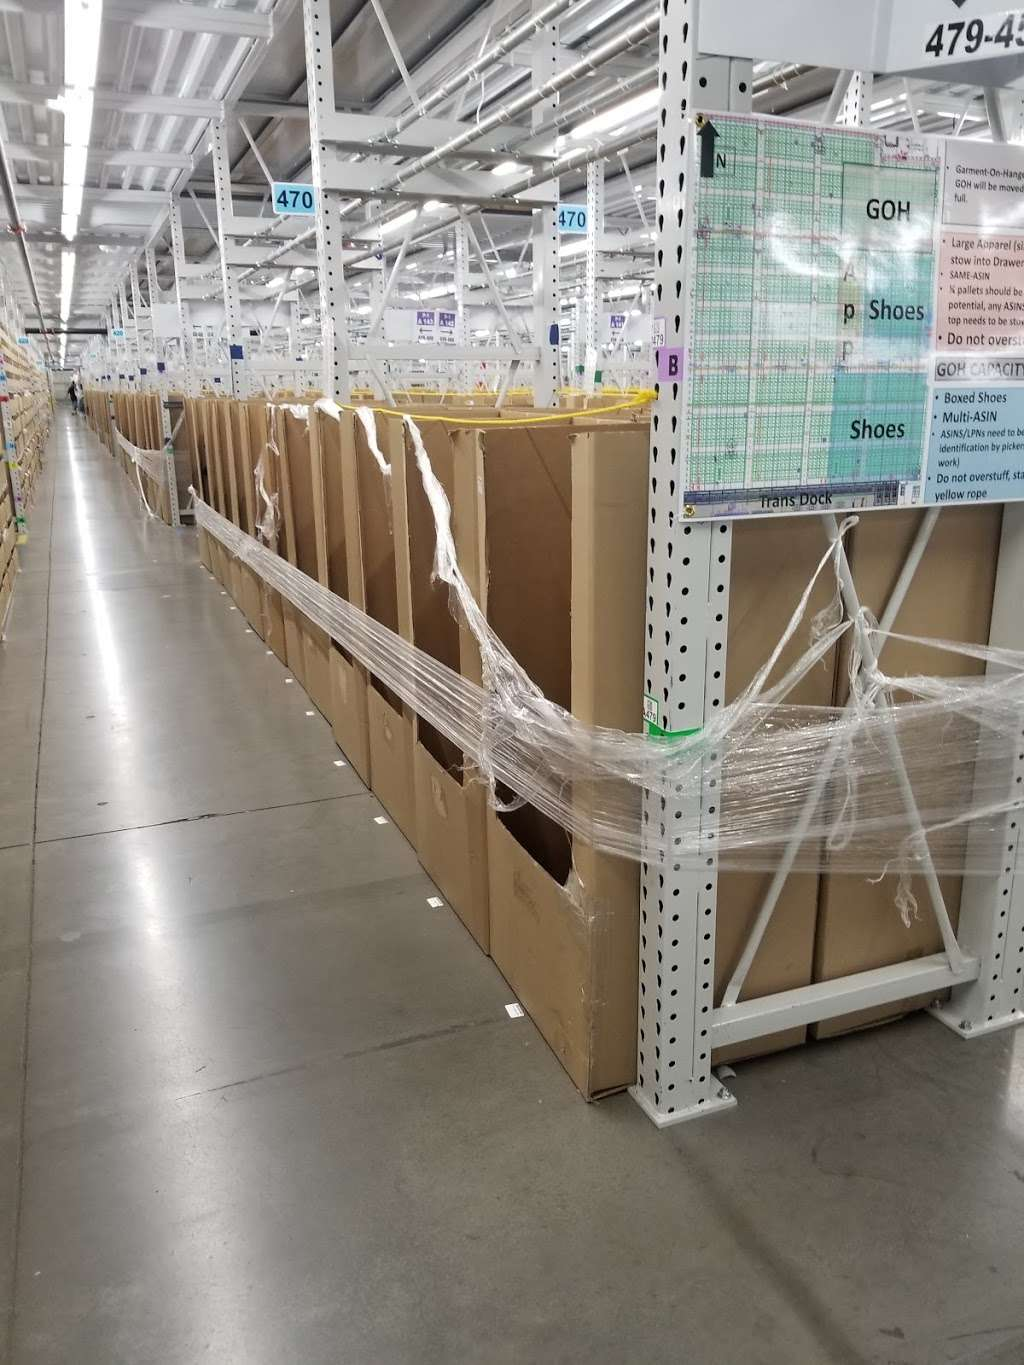 Amazon Fulfillment - PHX3 - storage  | Photo 2 of 10 | Address: 6835 W Buckeye Rd, Phoenix, AZ 85043, USA | Phone: (866) 203-8363